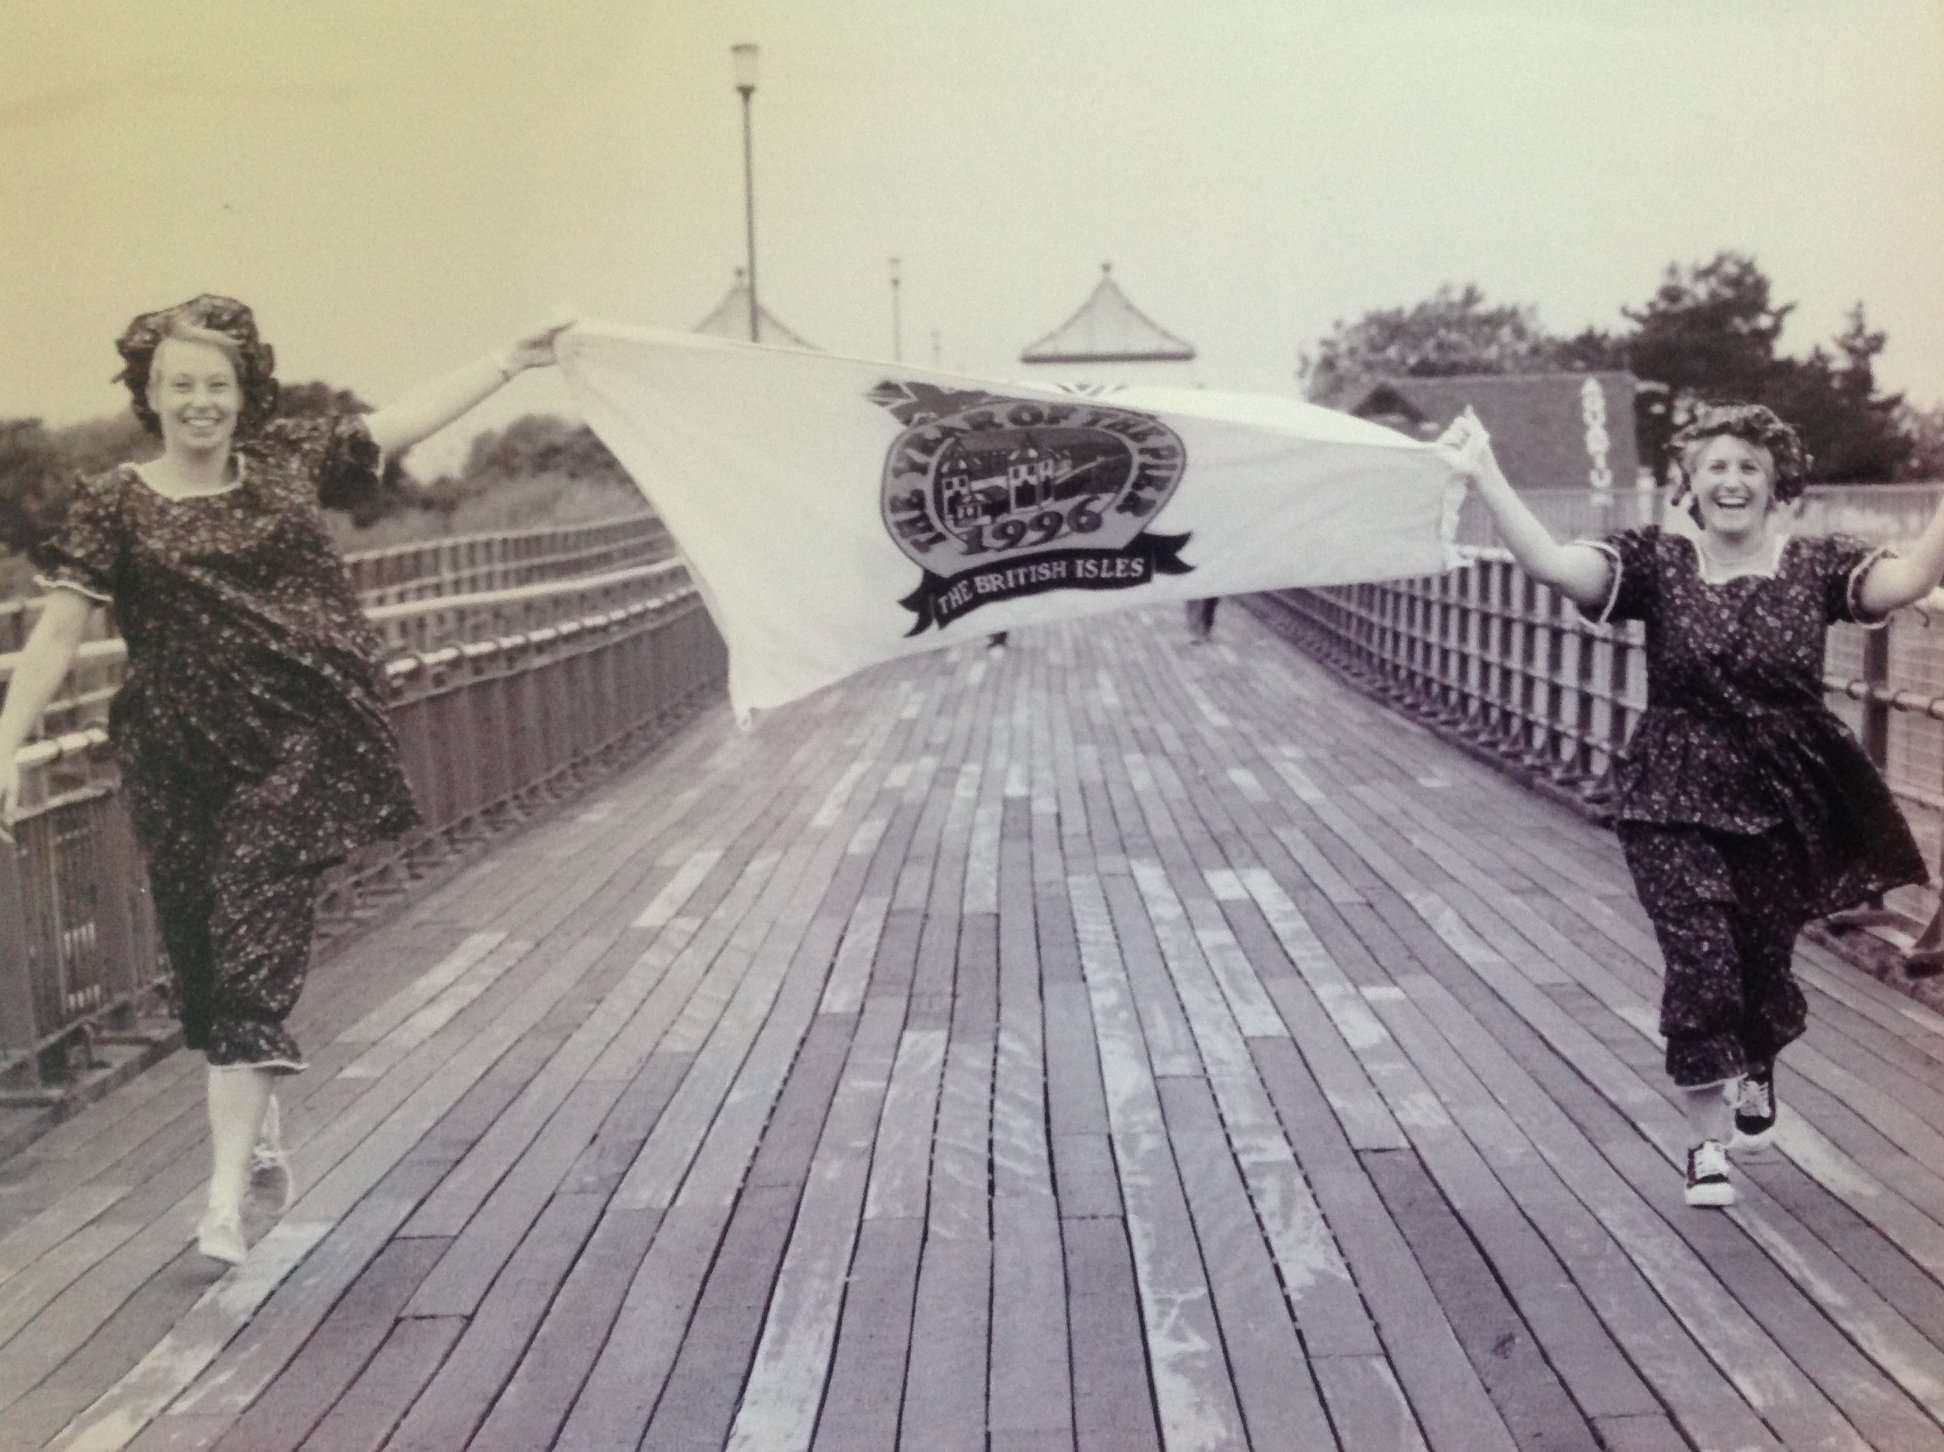 Southport Pier celebrates The Year Of The Pier in 1996